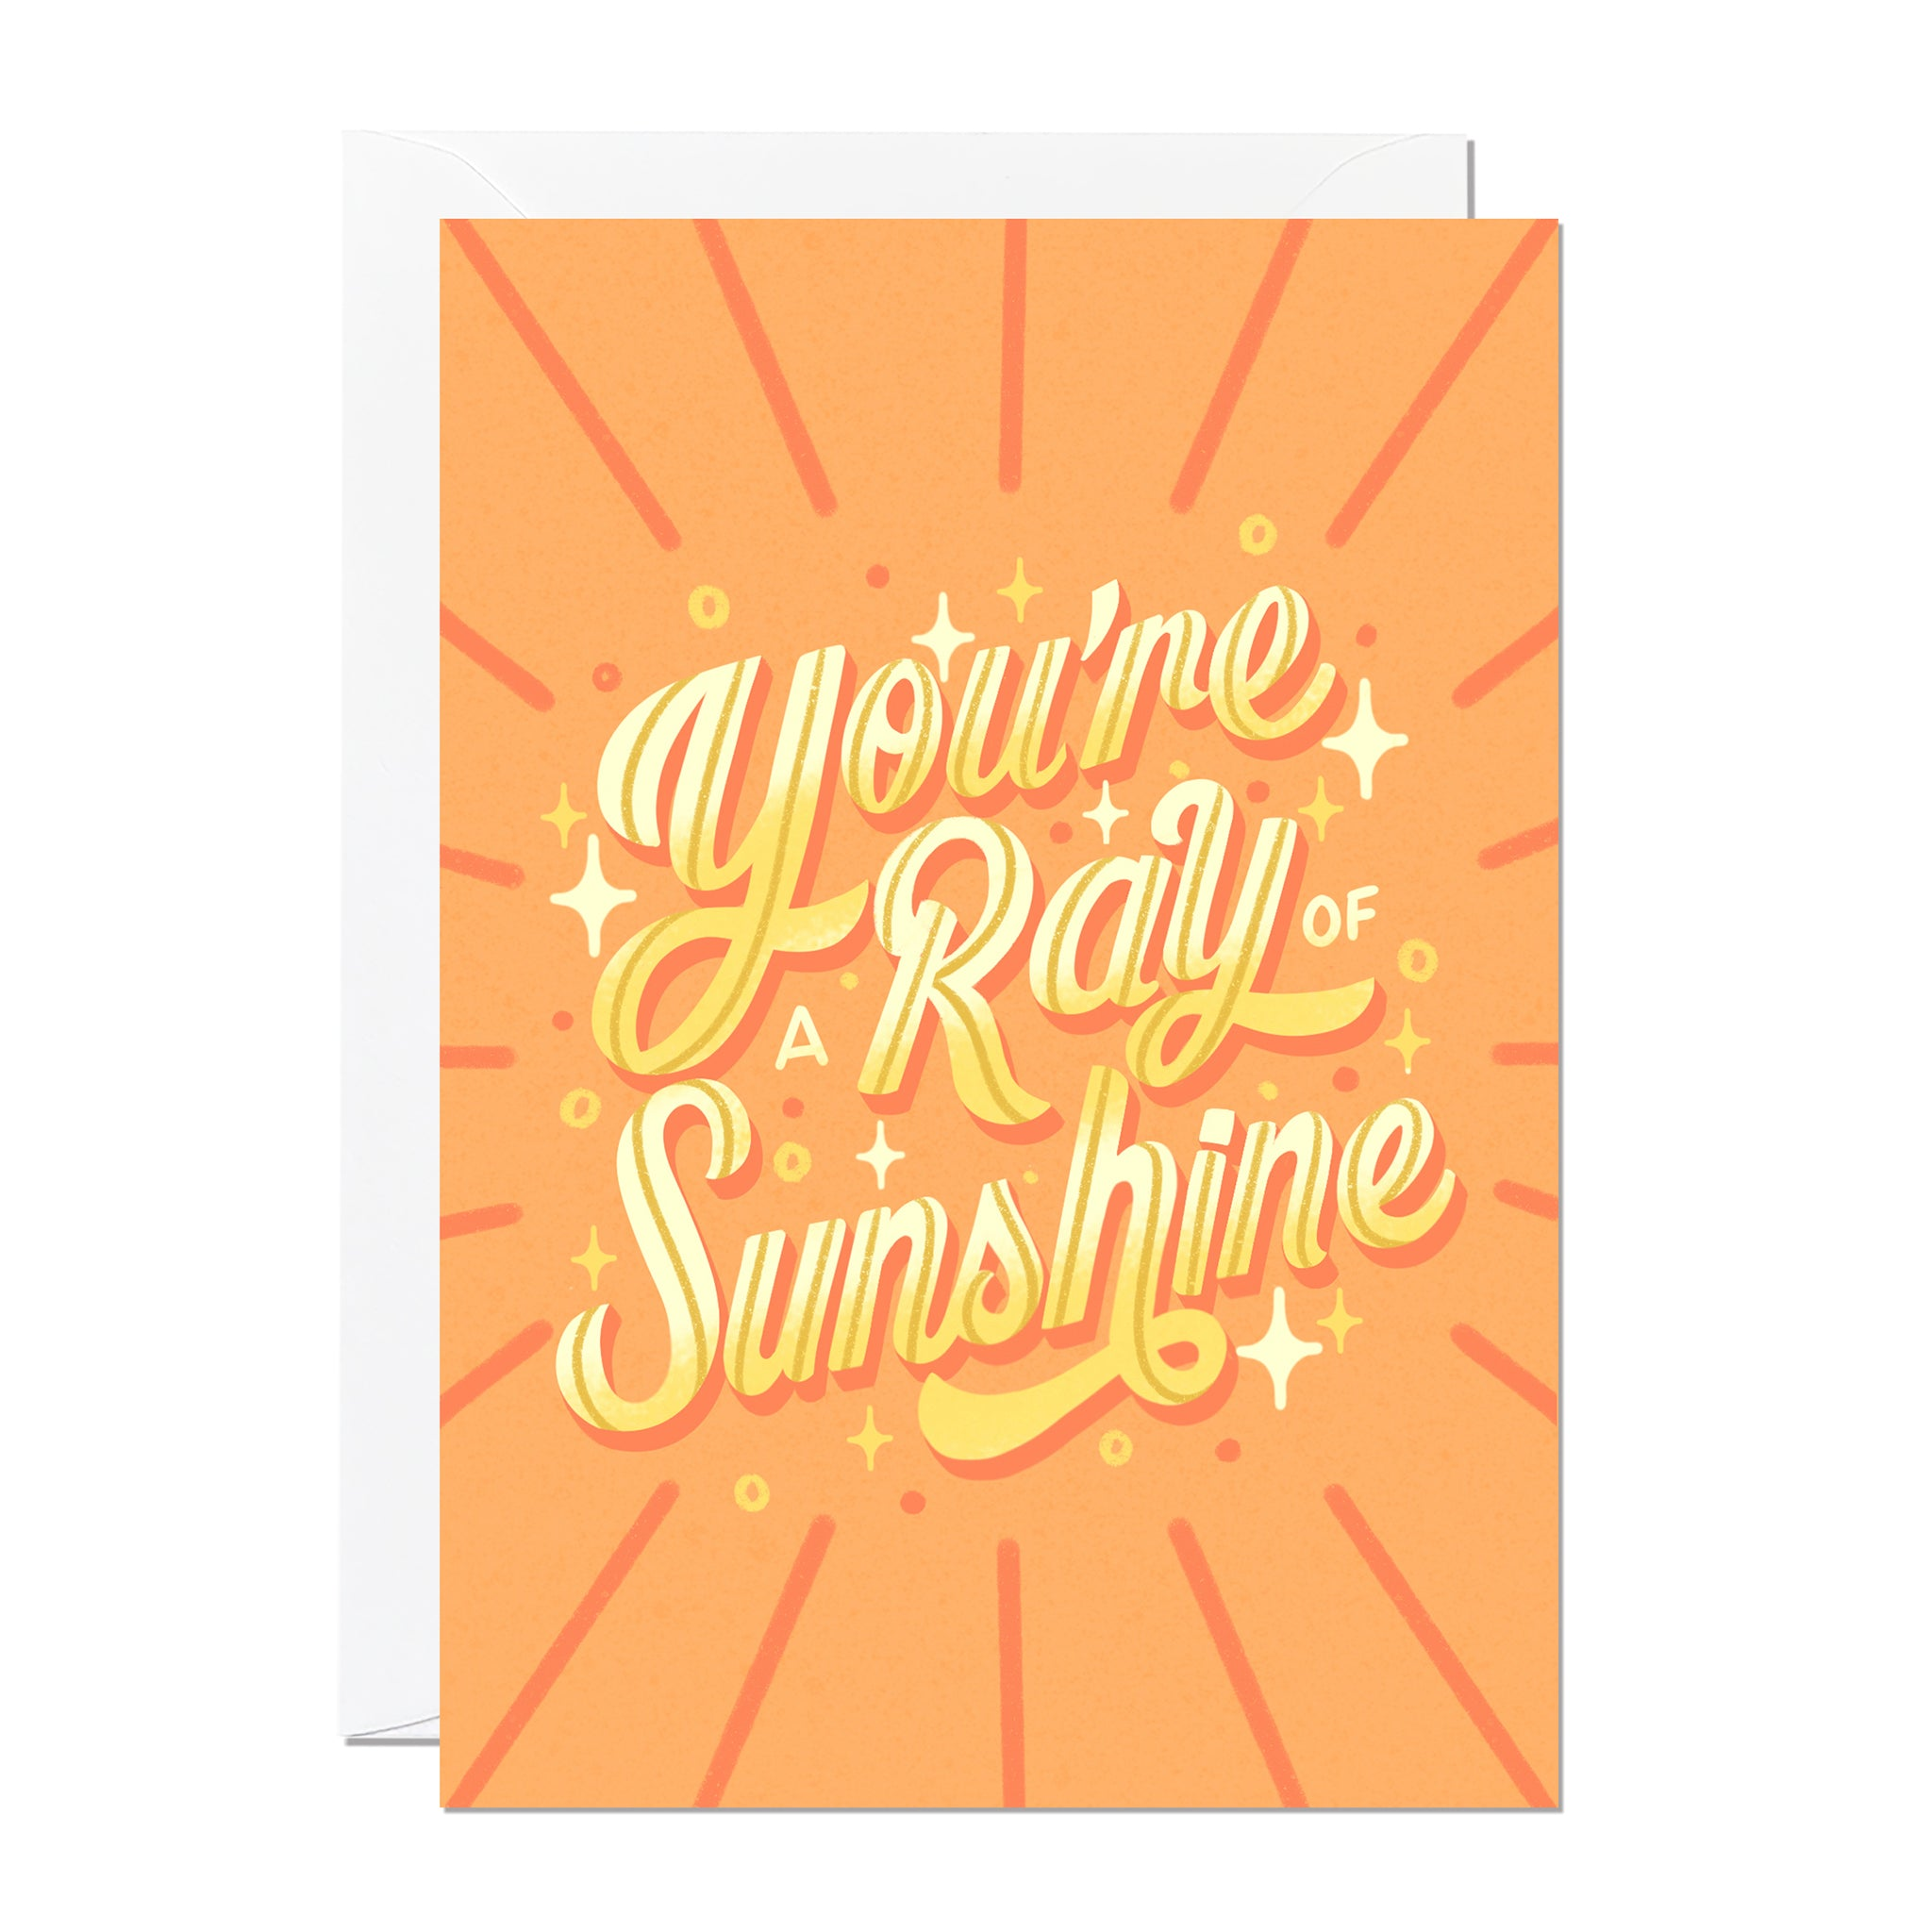 This greeting card features hand-lettering by Roselly Monegro and says 'you're a ray of sunshine'. It's set on a orange and yellow background and is printed in the UK.